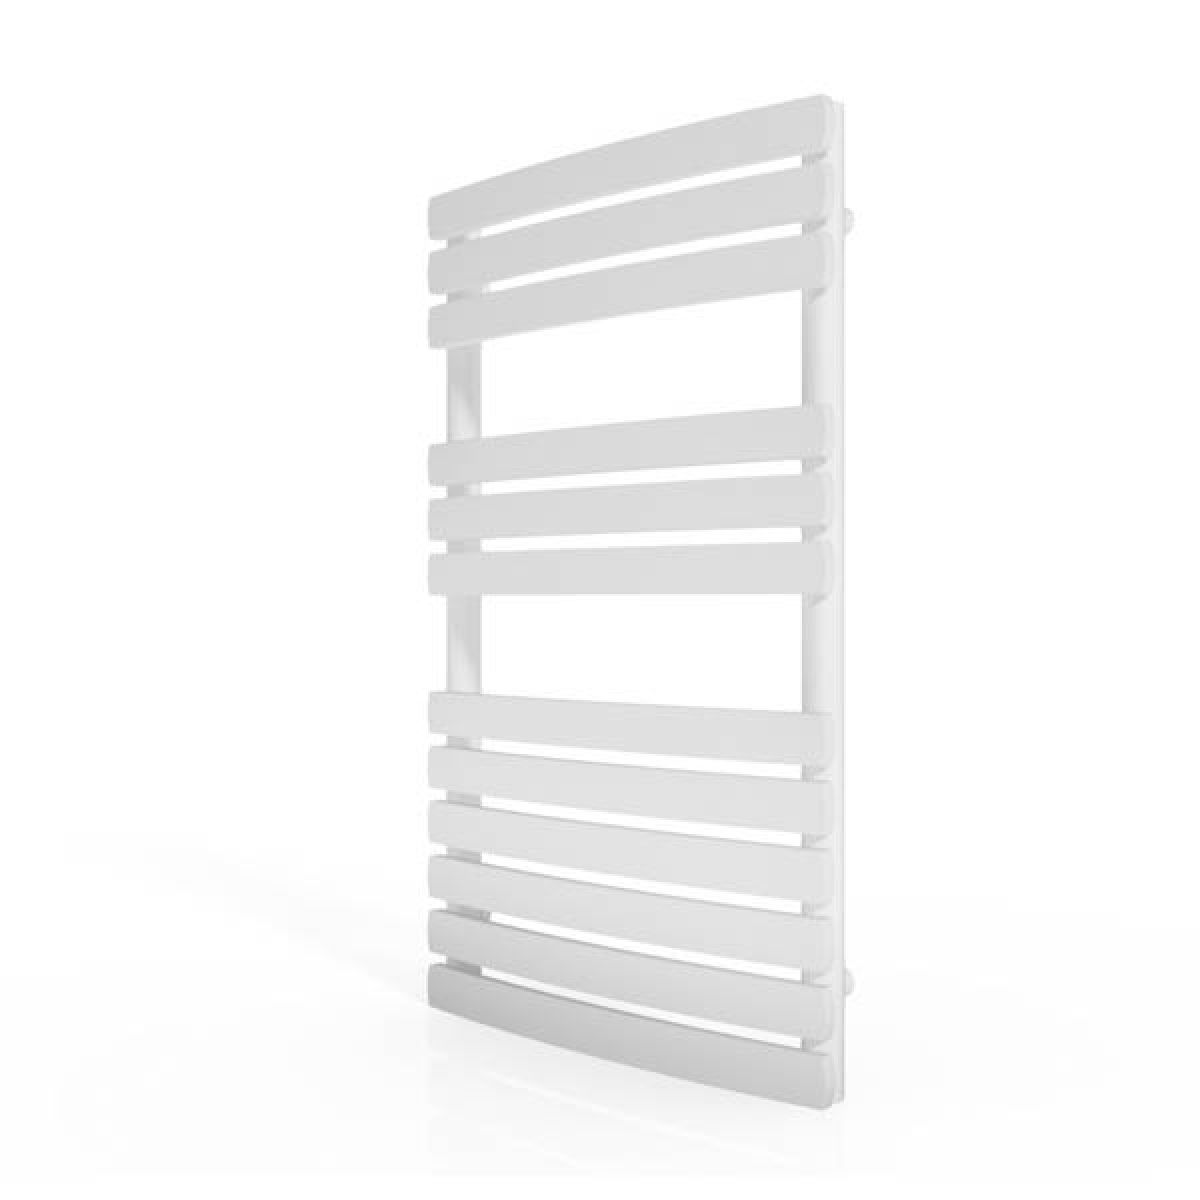 Cassellie White Straight Heated Towel Rail With Flat Profile 800 x 500mm